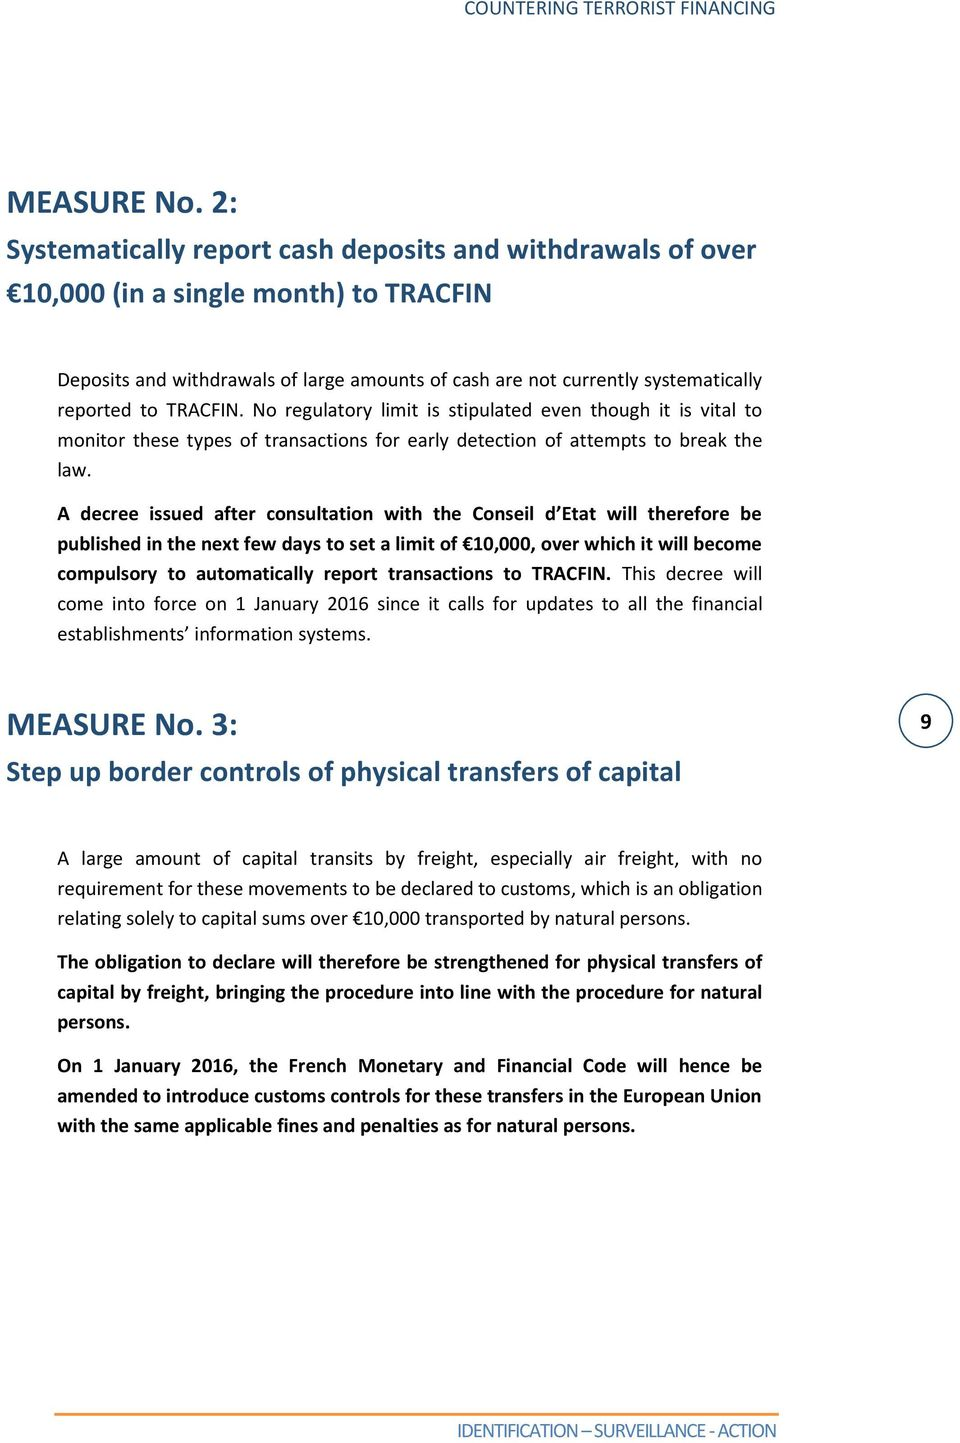 TRACFIN. No regulatory limit is stipulated even though it is vital to monitor these types of transactions for early detection of attempts to break the law.